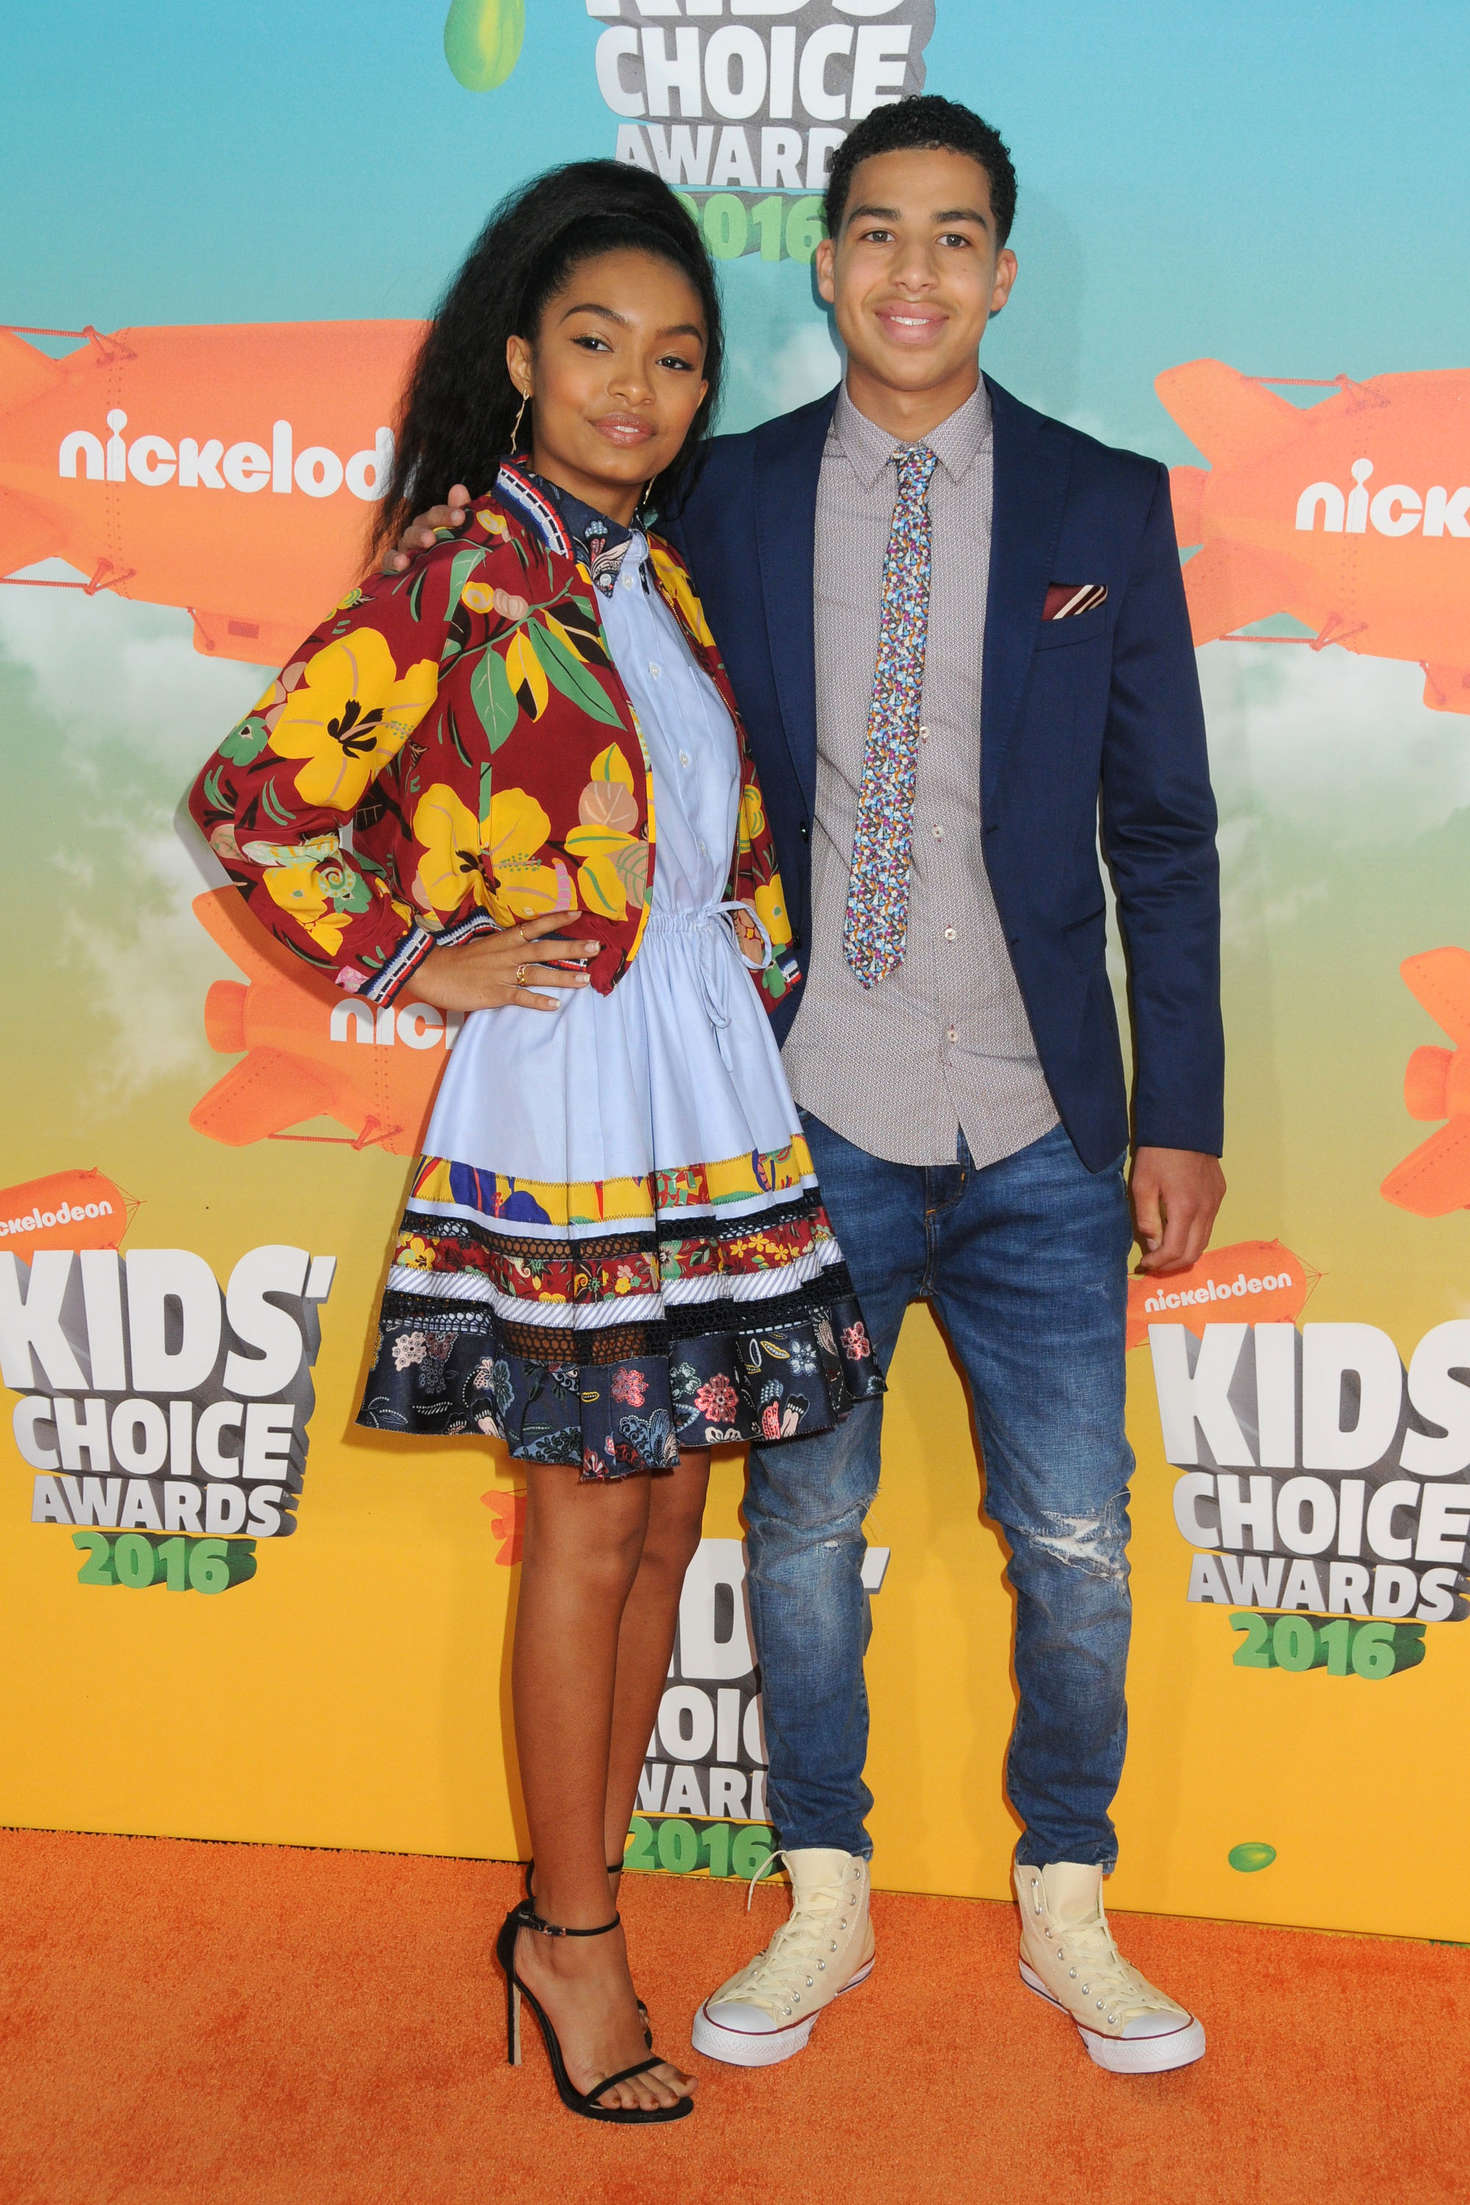 Yara Shahidi Nickelodeon Kids Choice Awards in Inglewood